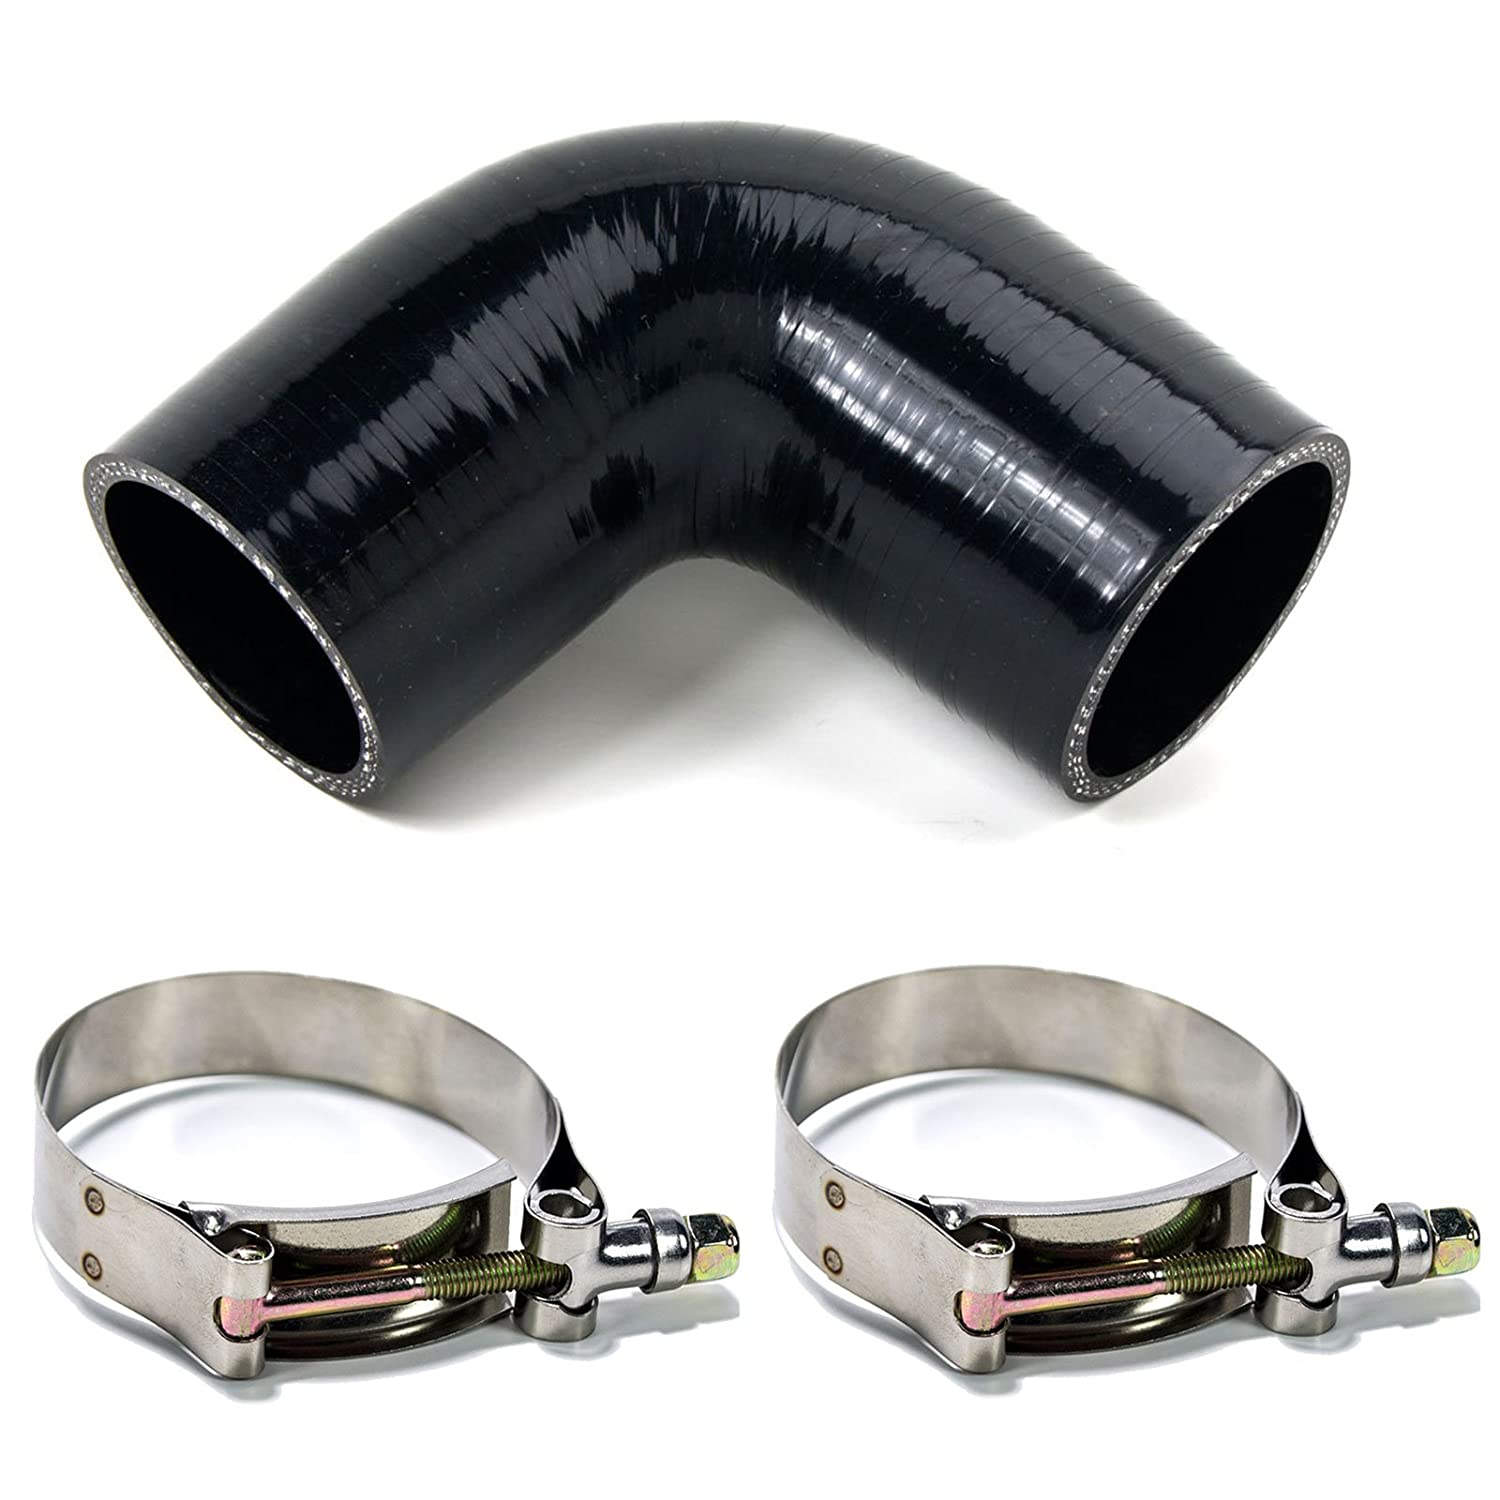 Squirrelly 3 inch Black Silicone Coupler 90 Degree Turbo Intake Intercooler Pipe w// 2x T-Bolt Clamps